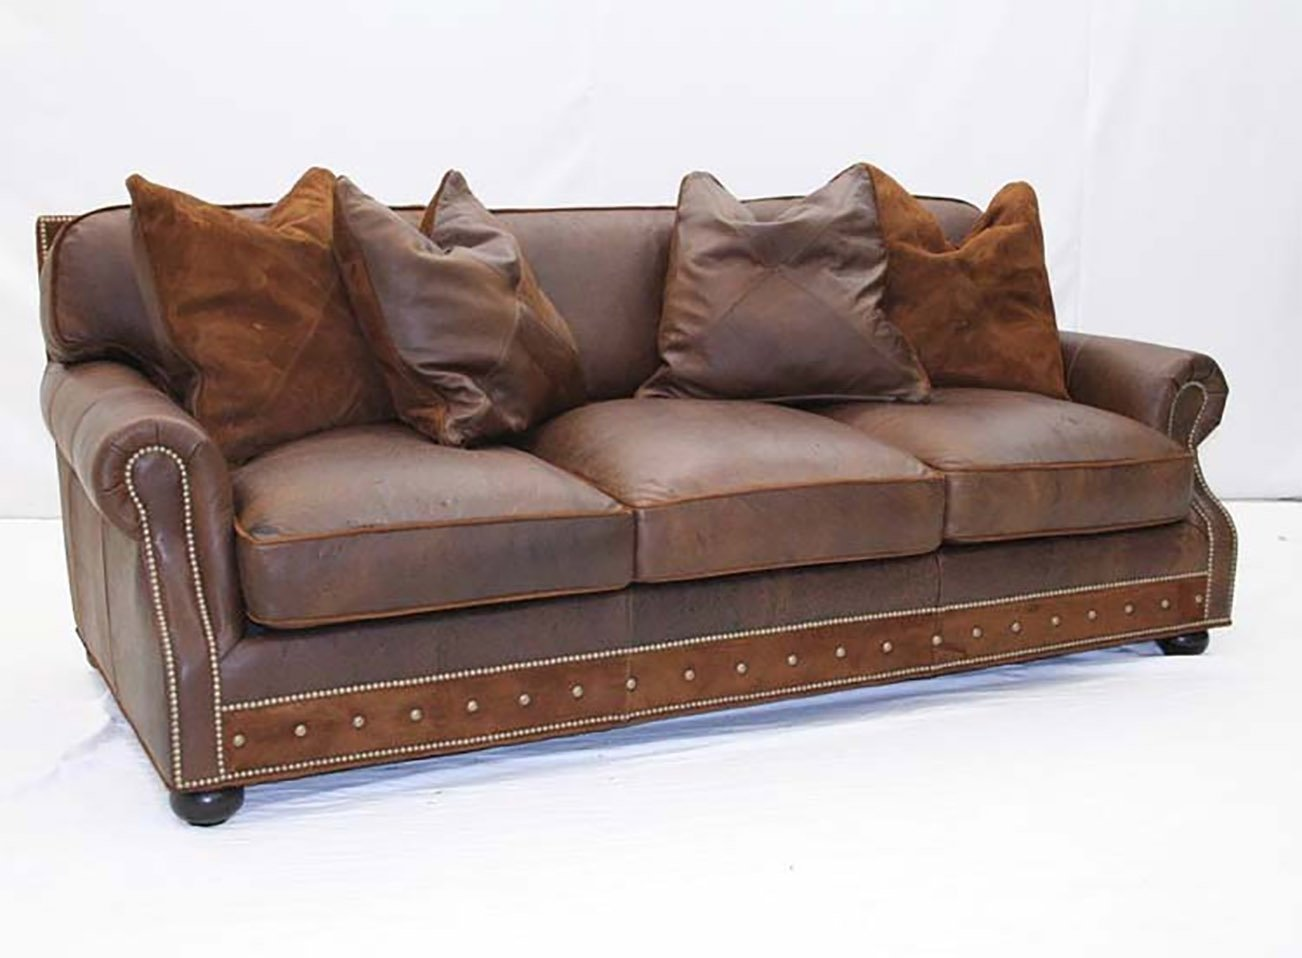 Desert Leather Sofa with Pillows - Old Hickory Tannery